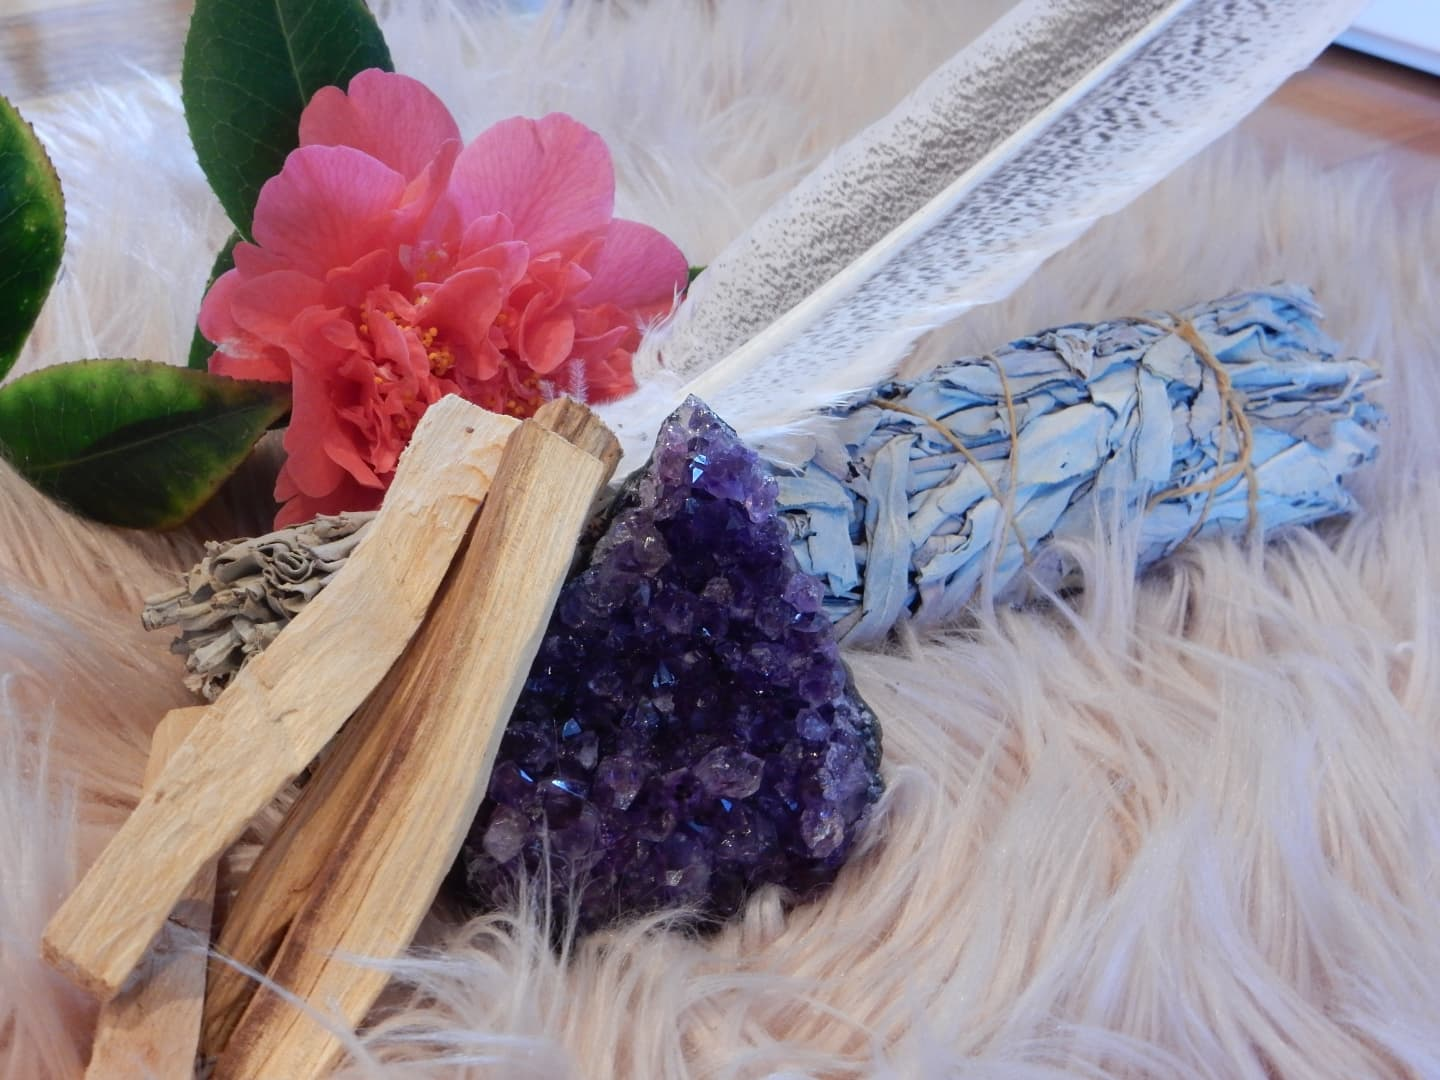 SMUDGE KITS AVAILABLE -